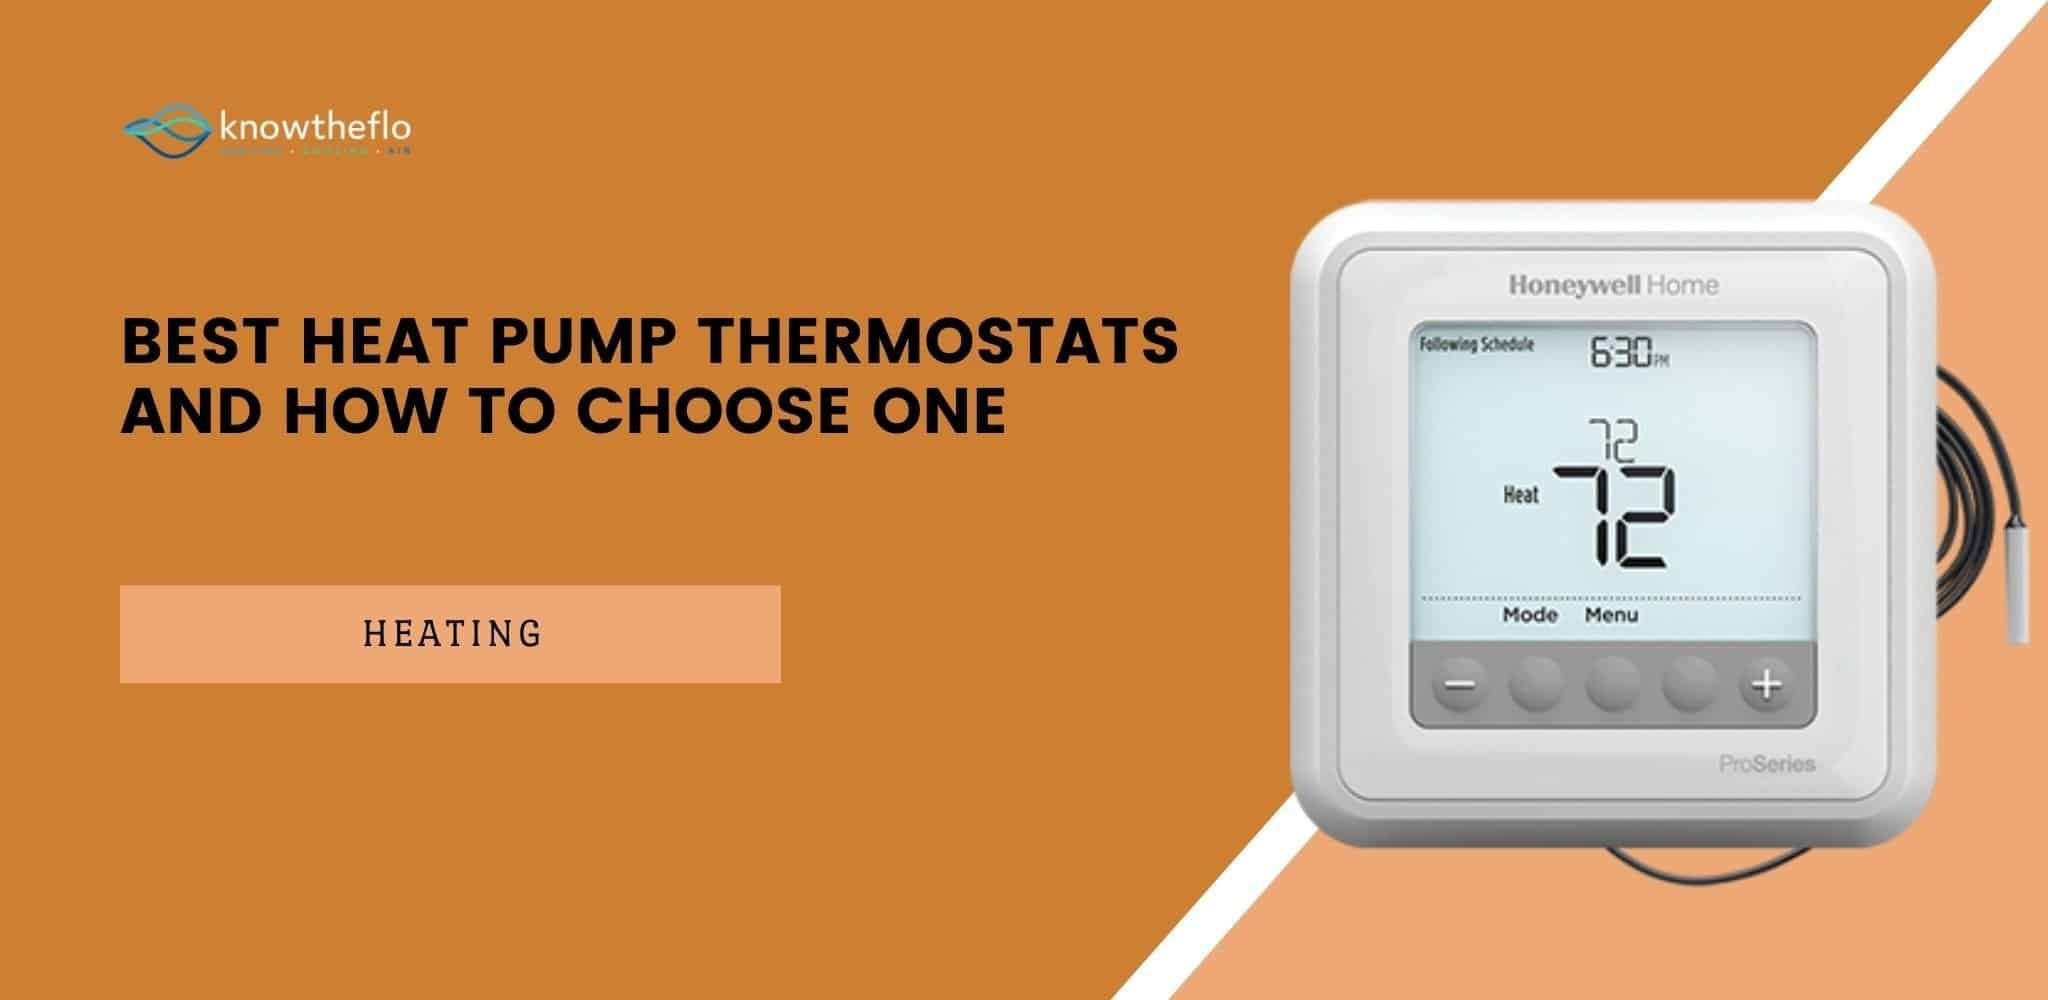 Best Heat Pump Thermostats and How to Choose One